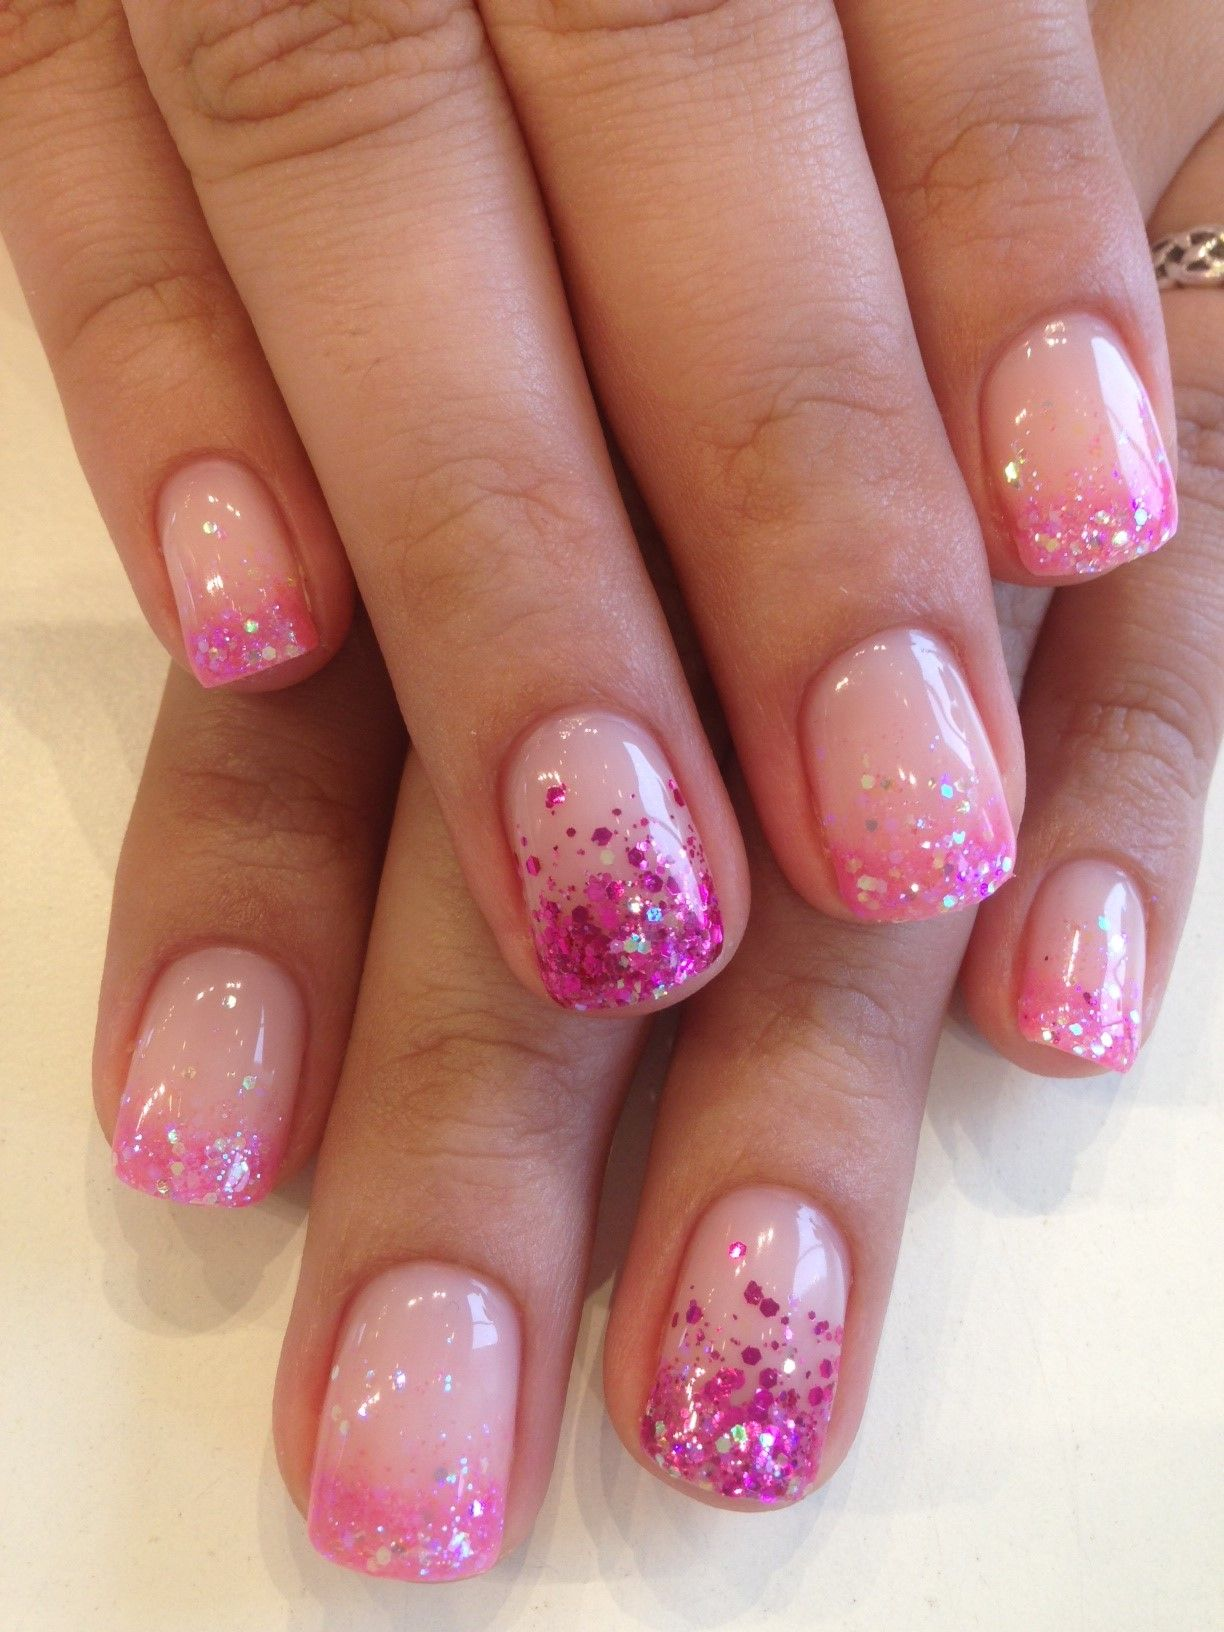 pink glitter french tips nails